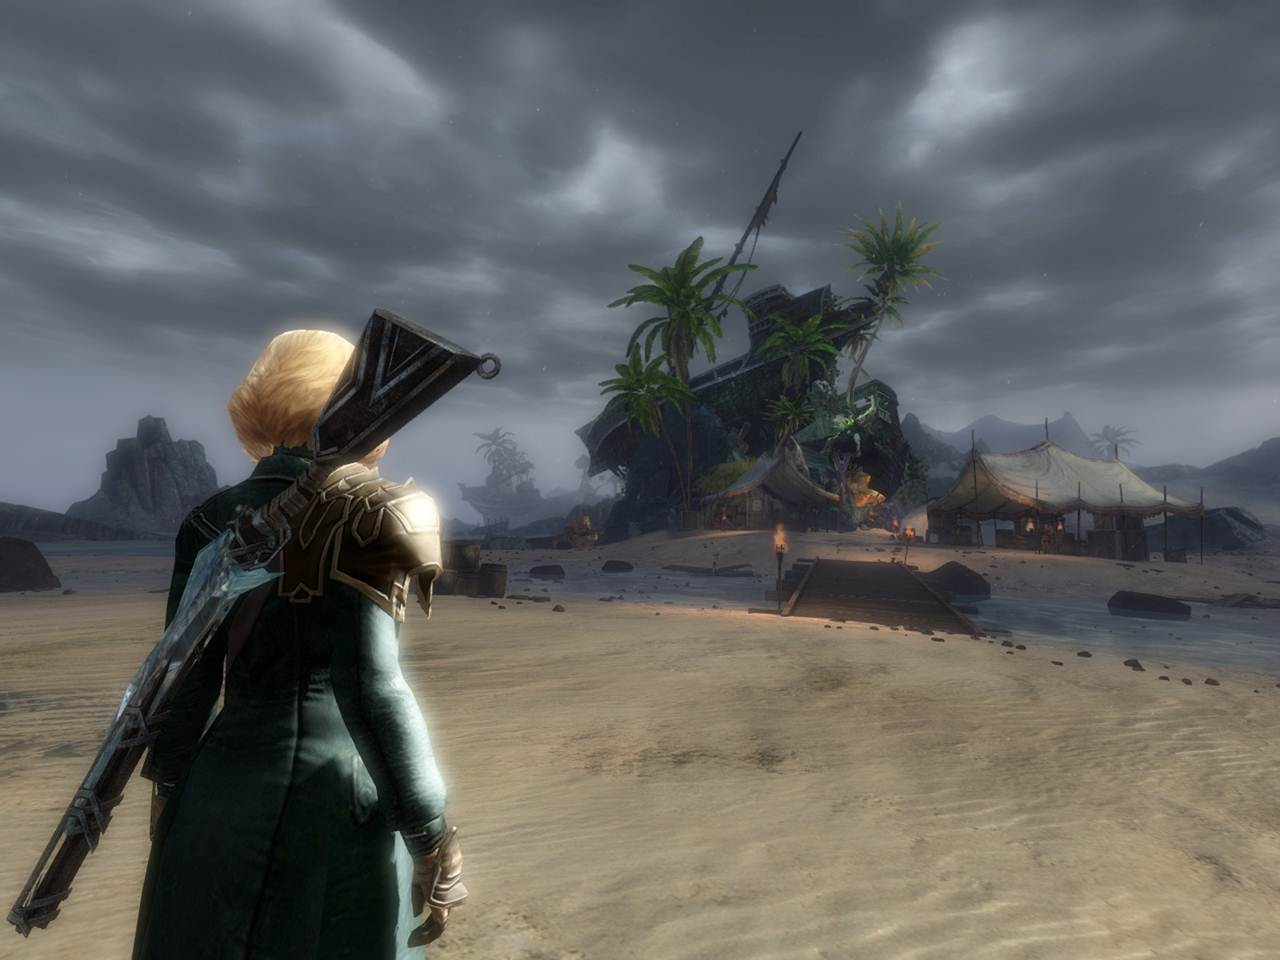 a game analysis of the guild wars 2 Can i run guild wars 2 check the guild wars 2 system requirements can i run it test your specs and rate your gaming pc system requirements lab runs millions of pc requirements tests on over 6,000 games a month.